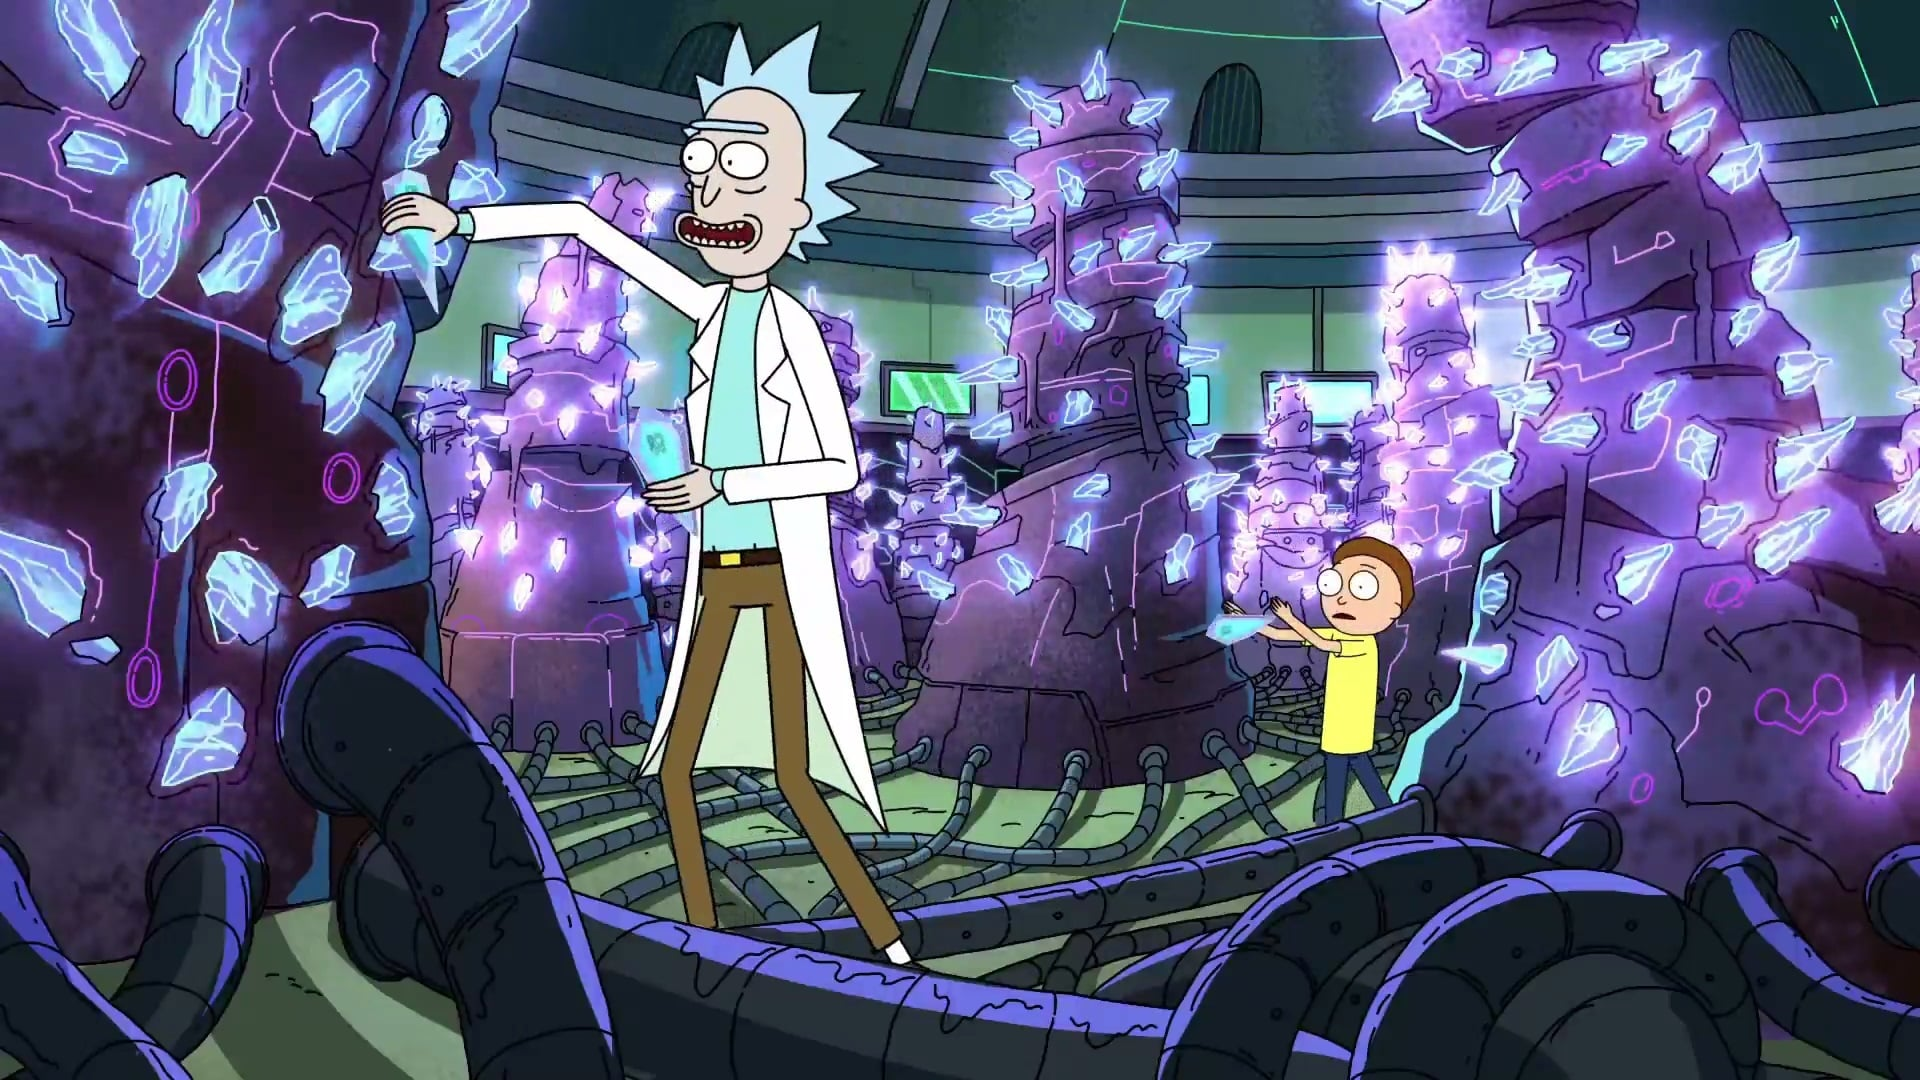 Rick and Morty Season 4 Episode 6 Plot Theories